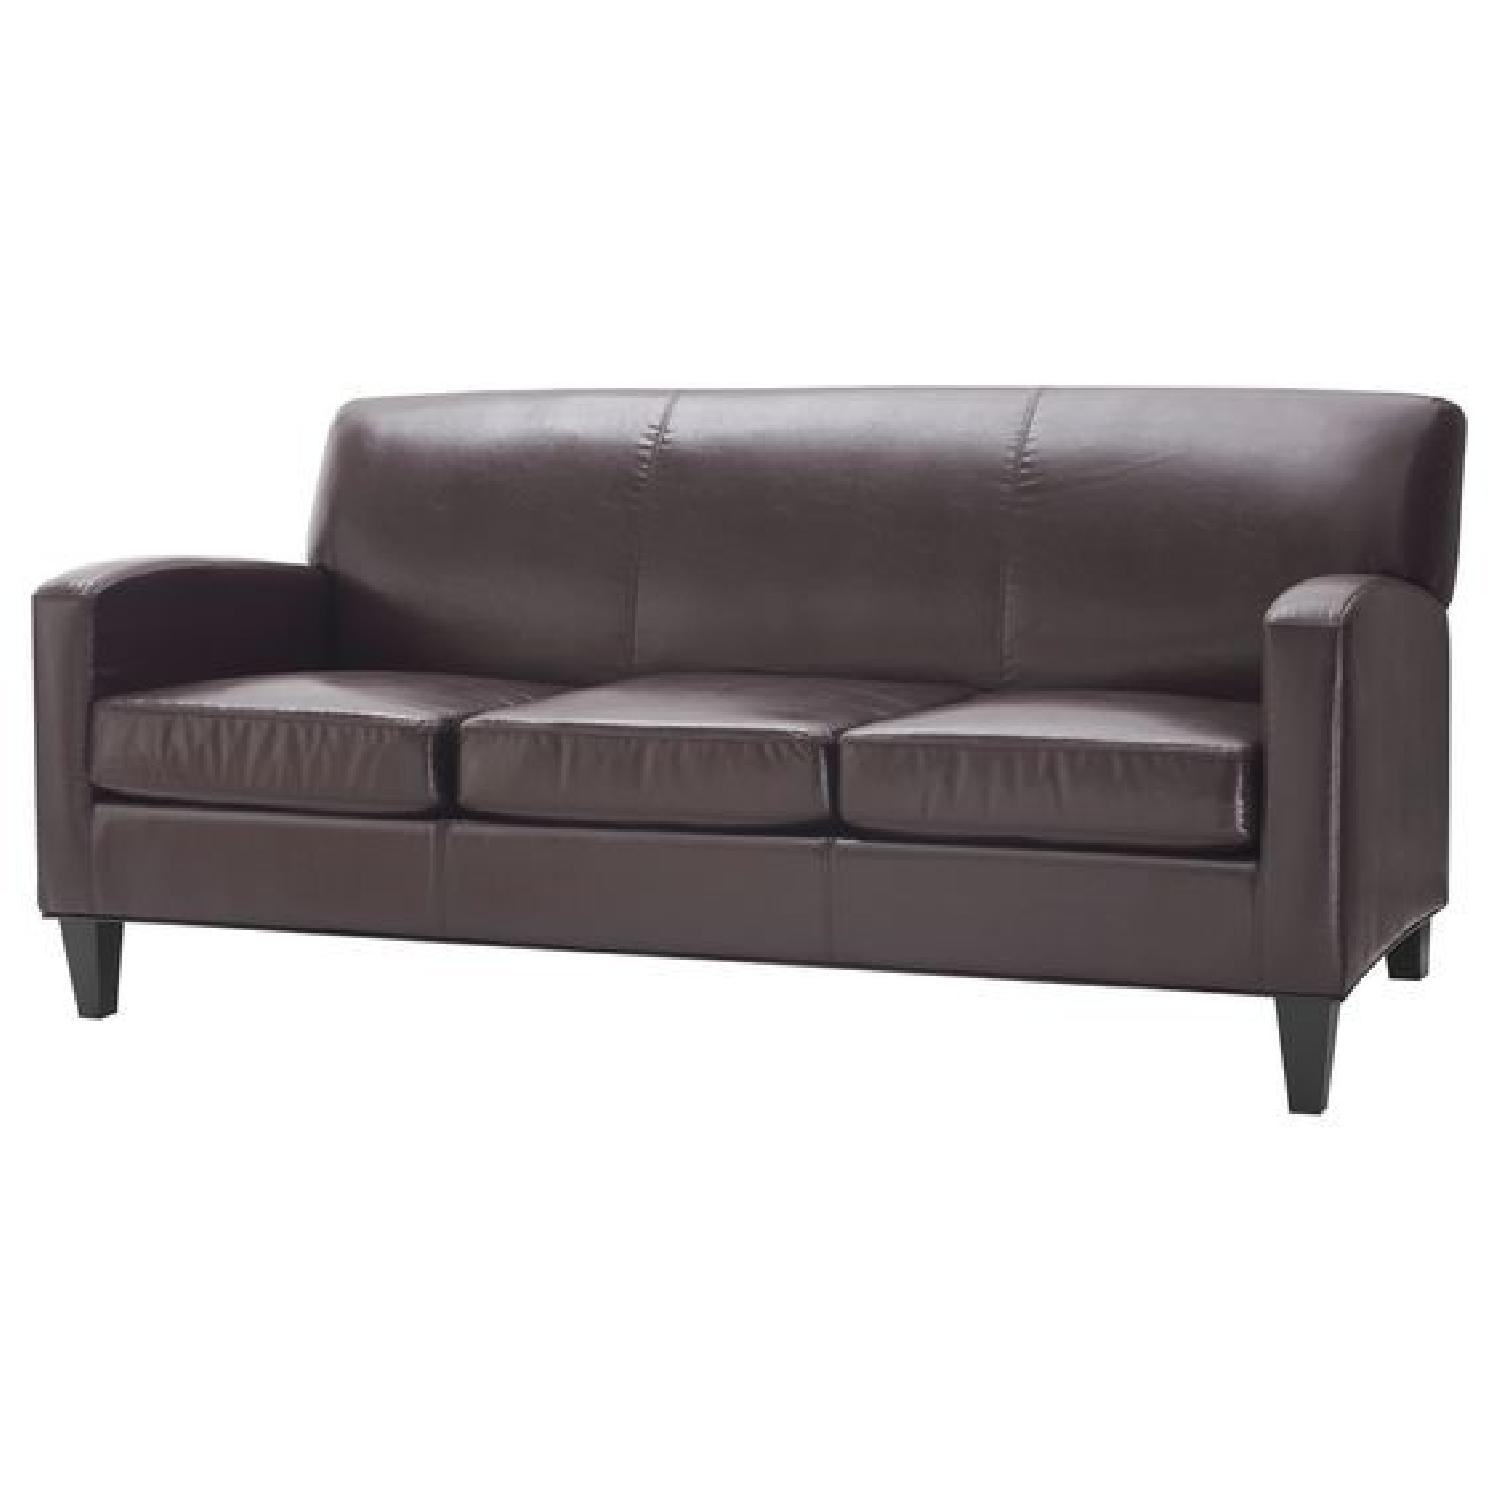 Ikea Jappling Faux Leather Sofa ...